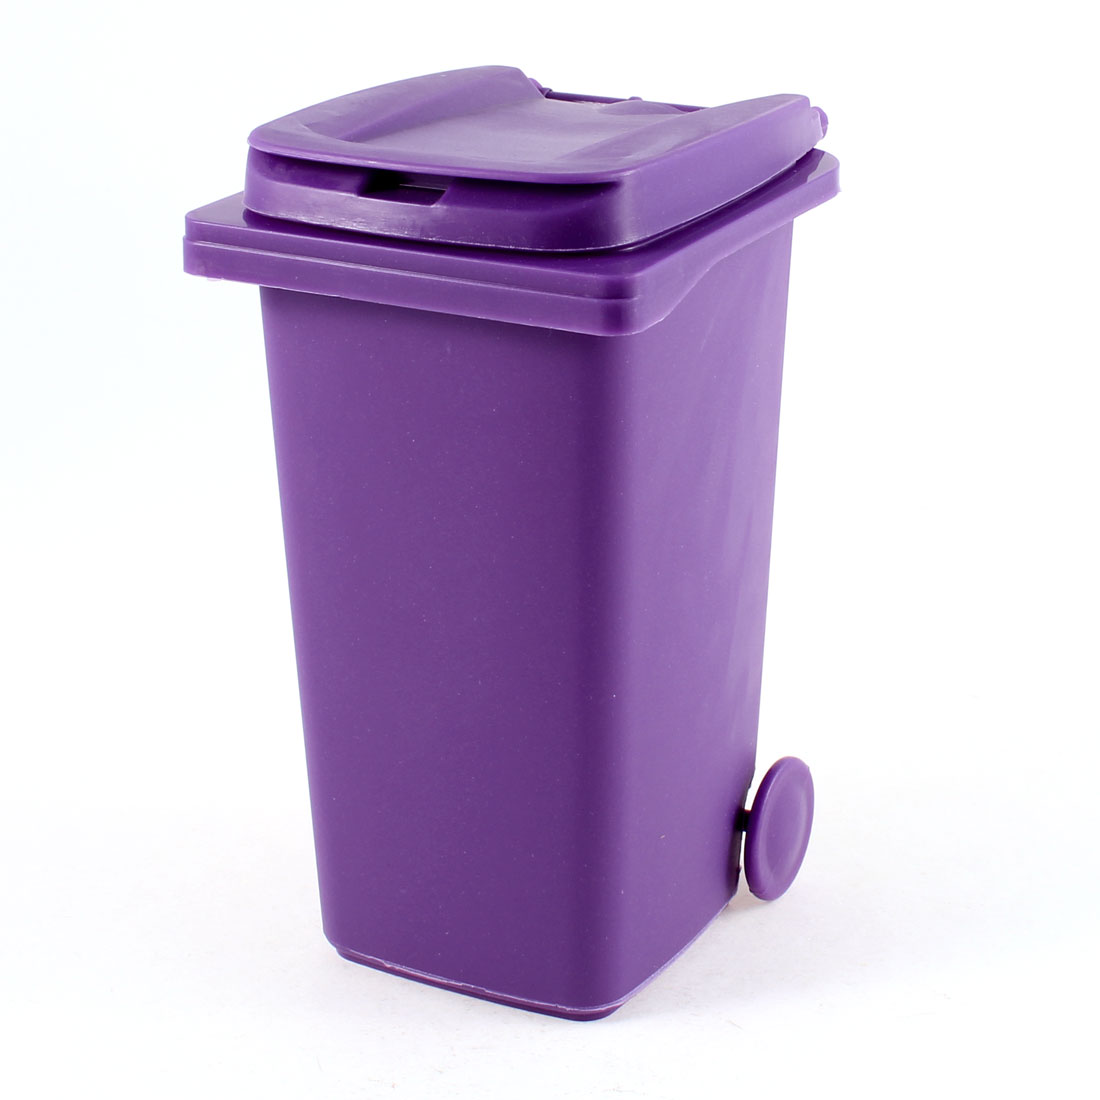 Purple Plastic Trash Can Style Ornament Pen Pencil Brush Holder Container